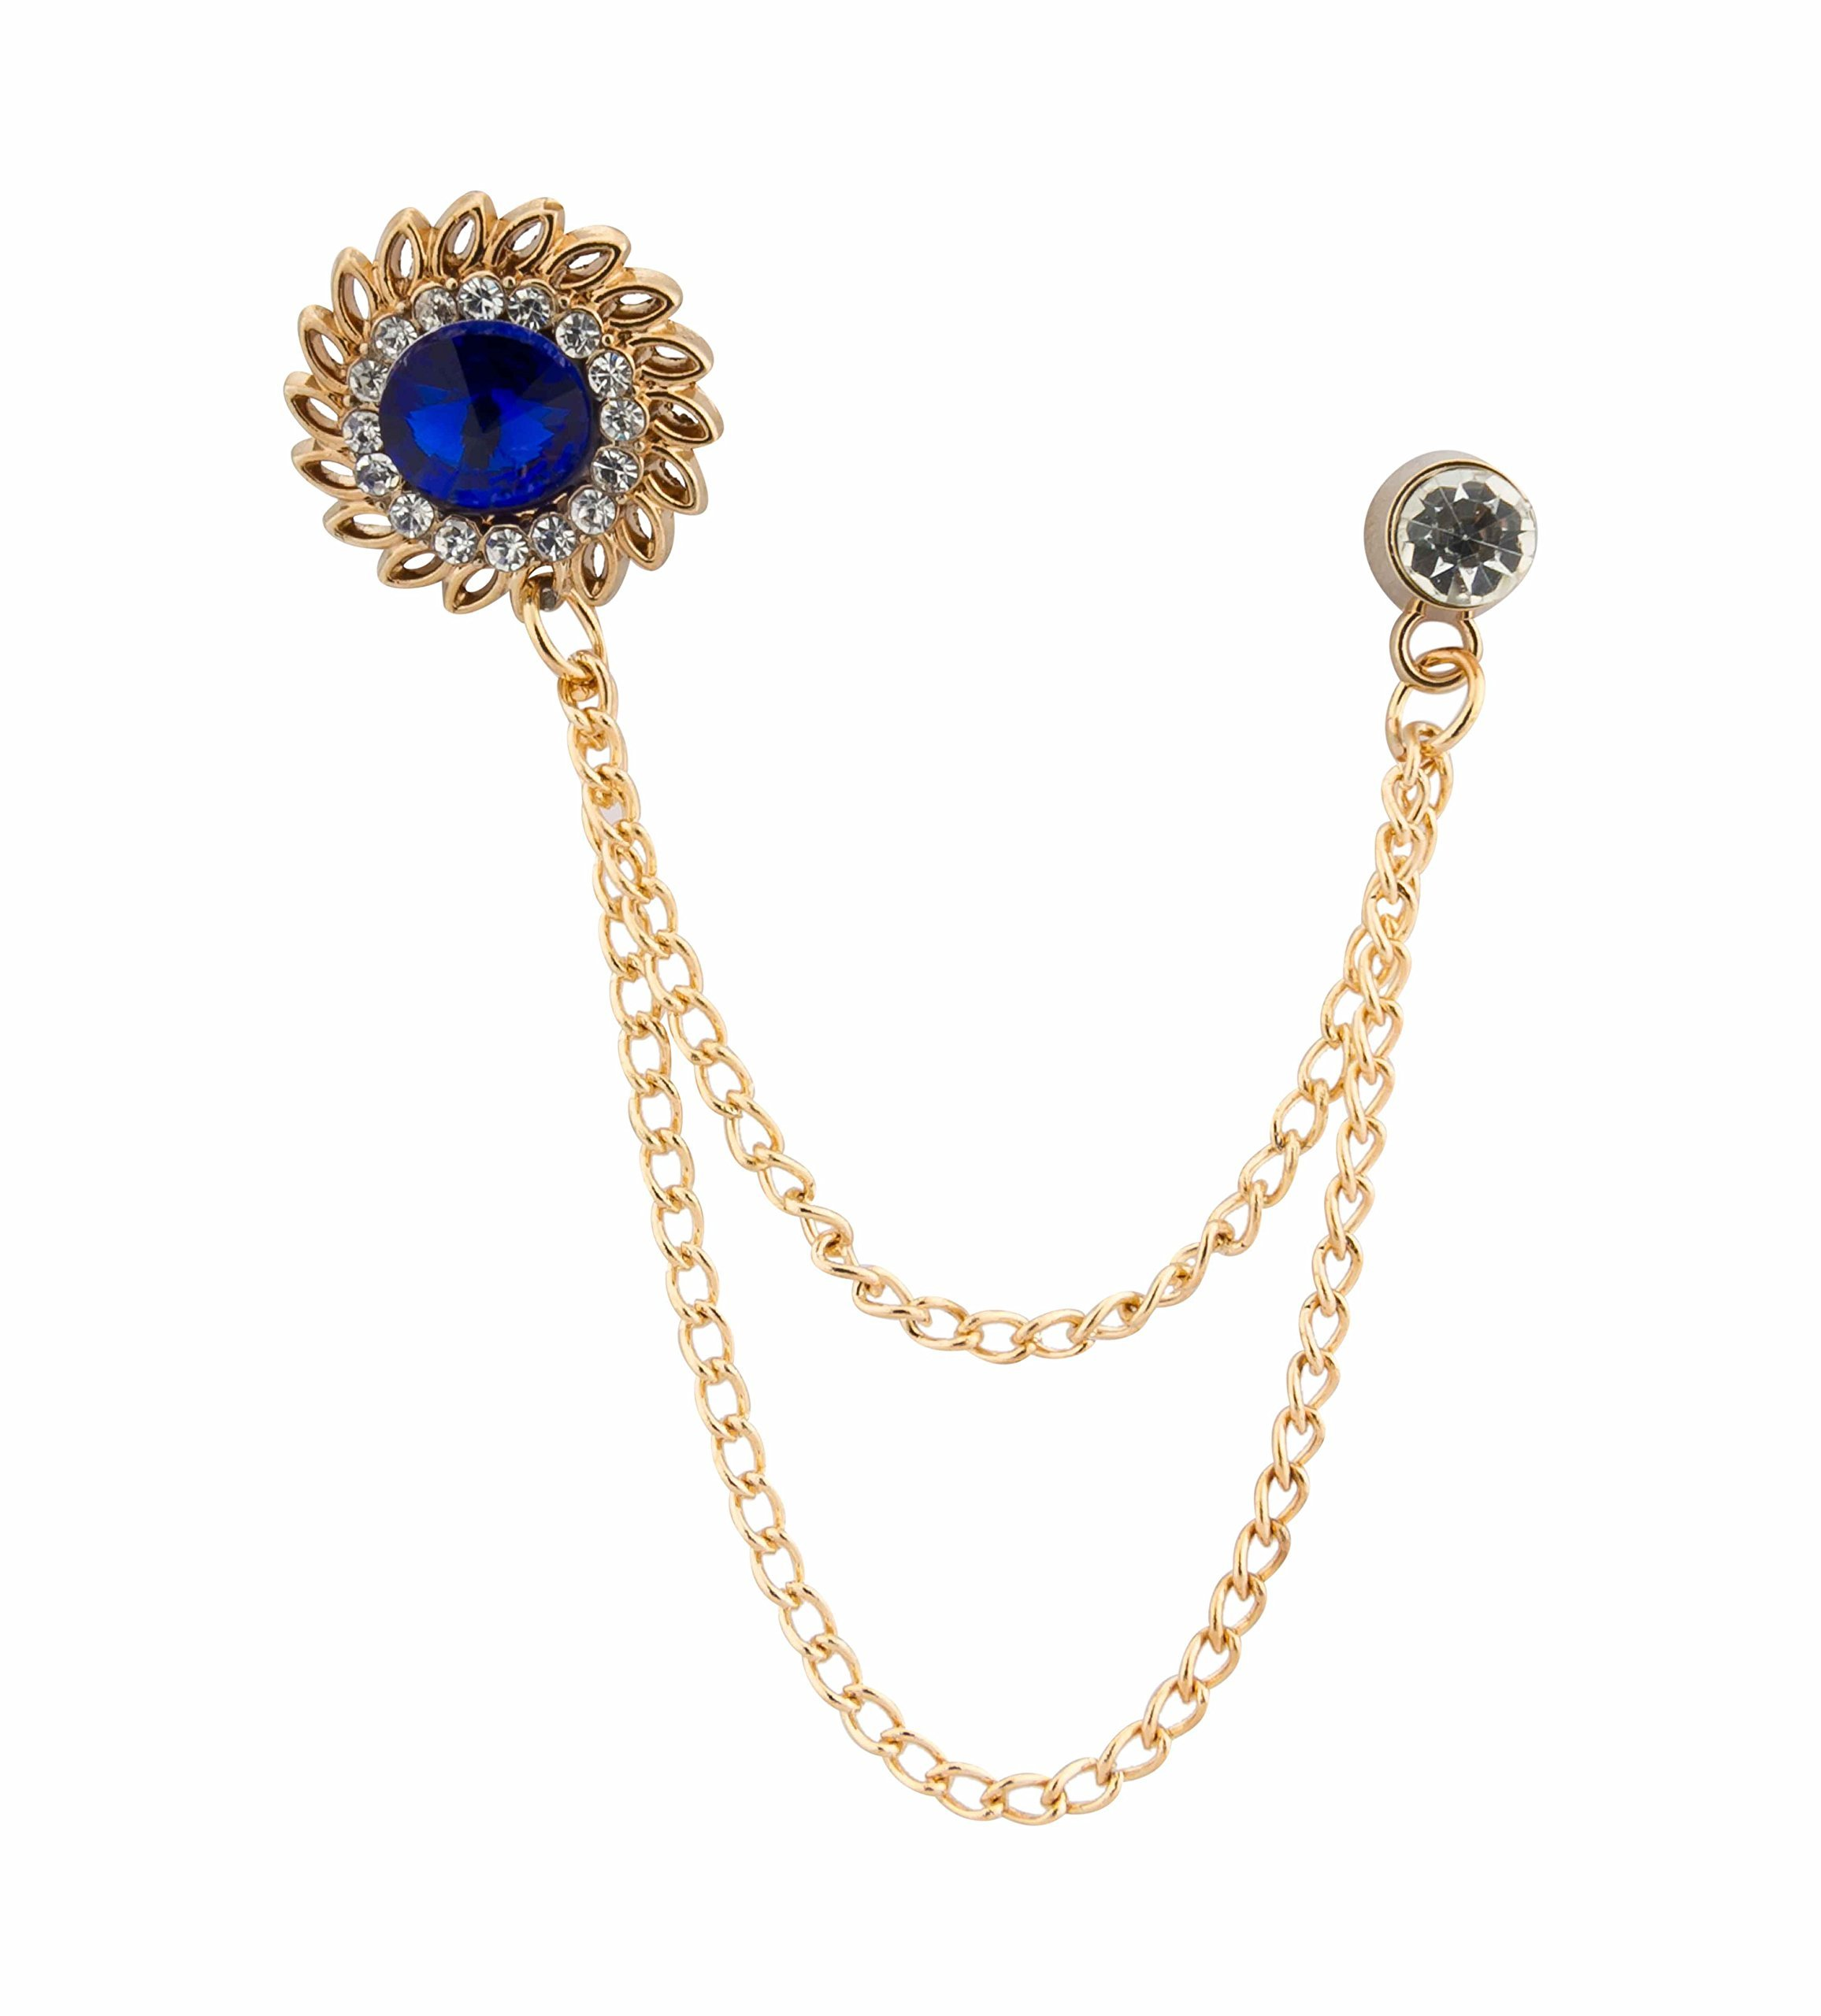 Shirt Studs Mens Accessories A N KINGPiiN Red and Blue Rose with Gold Leaf and Crown with Hanging Chain Lapel Pin Brooch Suit Stud